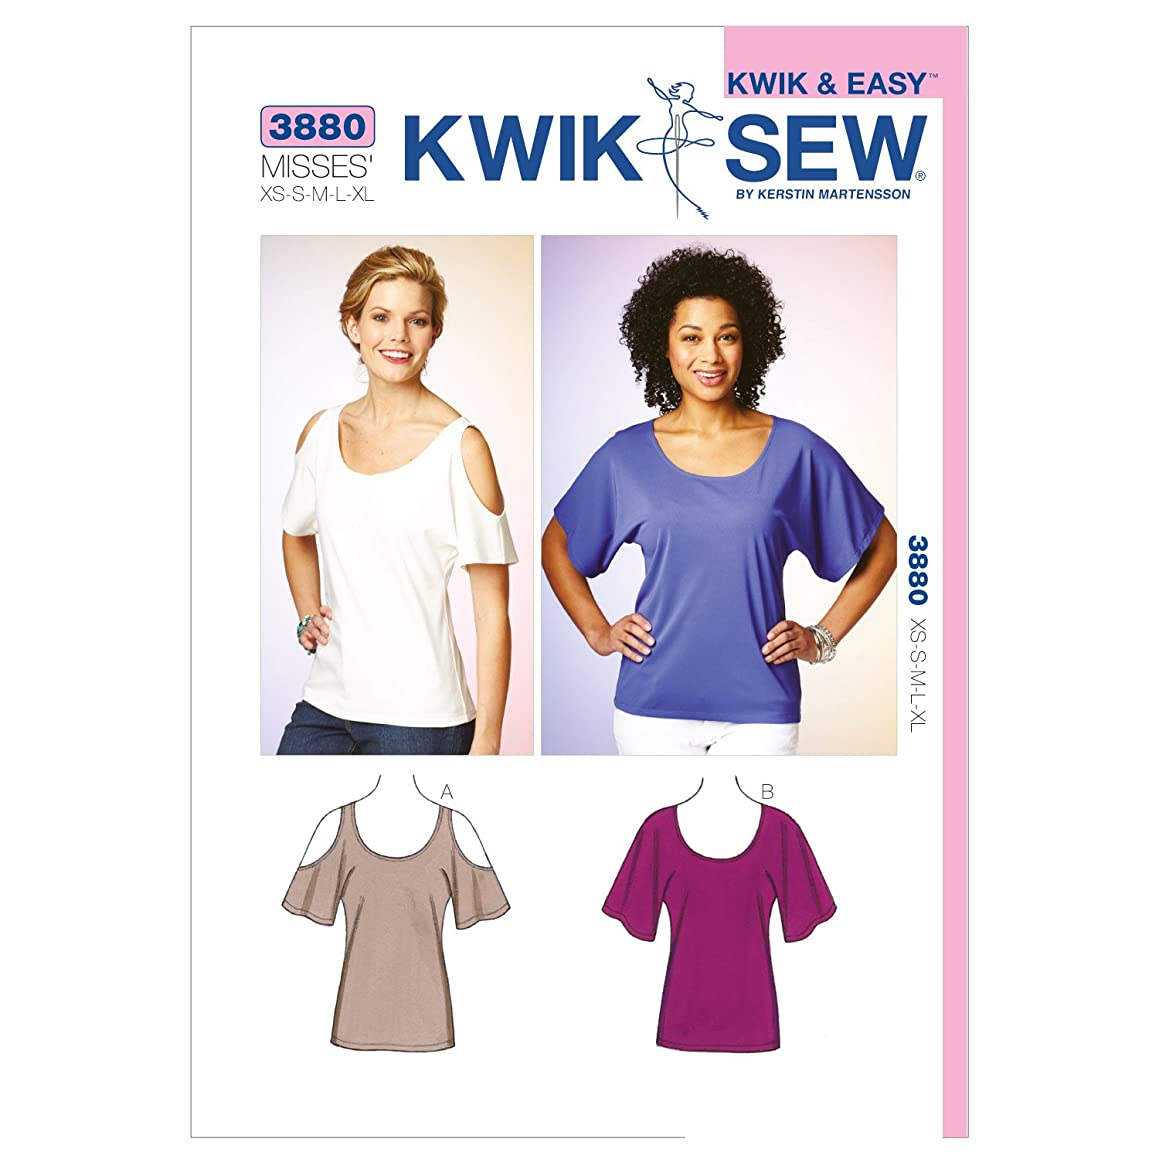 Kwik Sew K3880 Tops Sewing Pattern, Size XS-S-M-L-XL